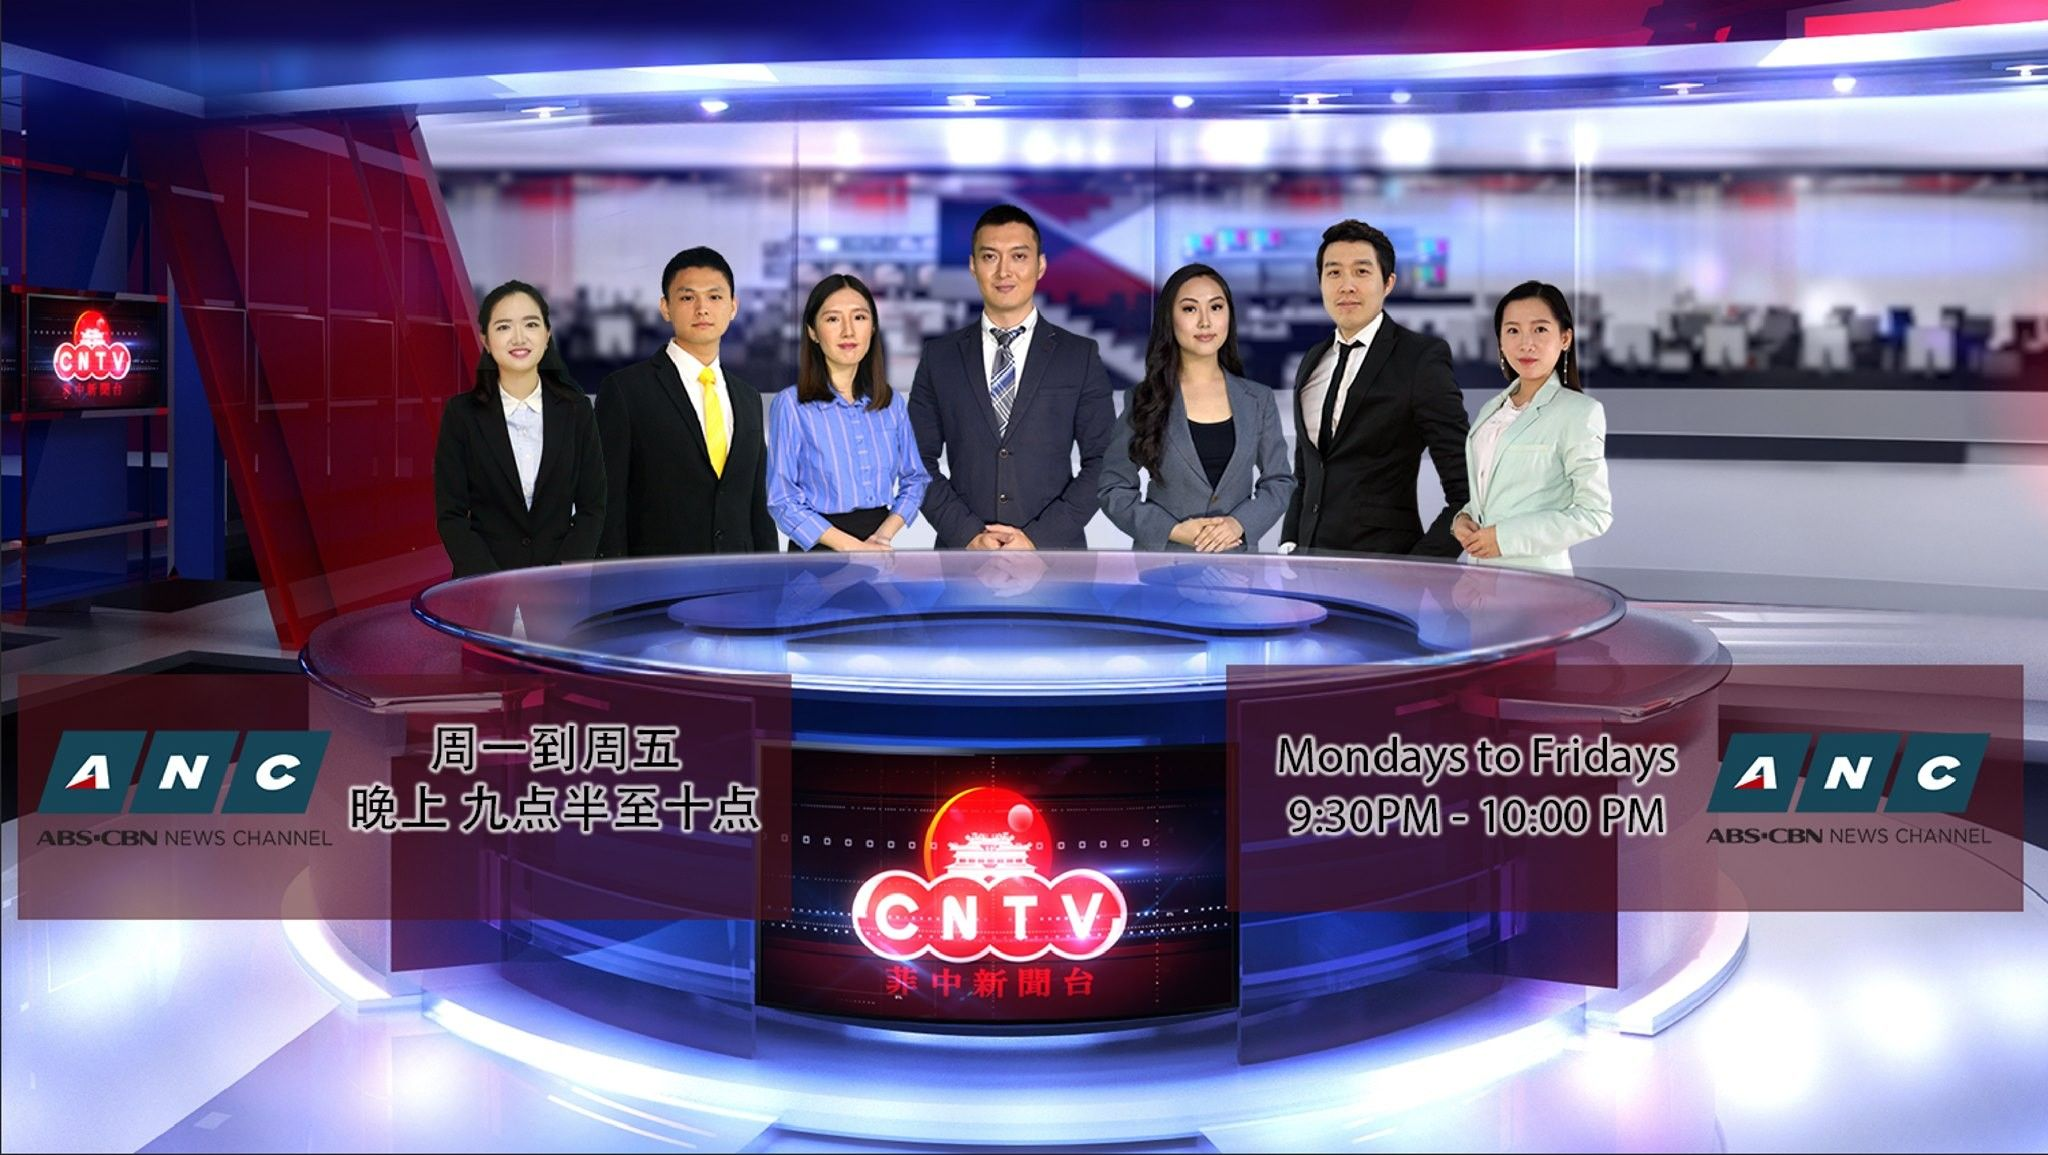 After backlash, ANC stops airing Chinese language newscast